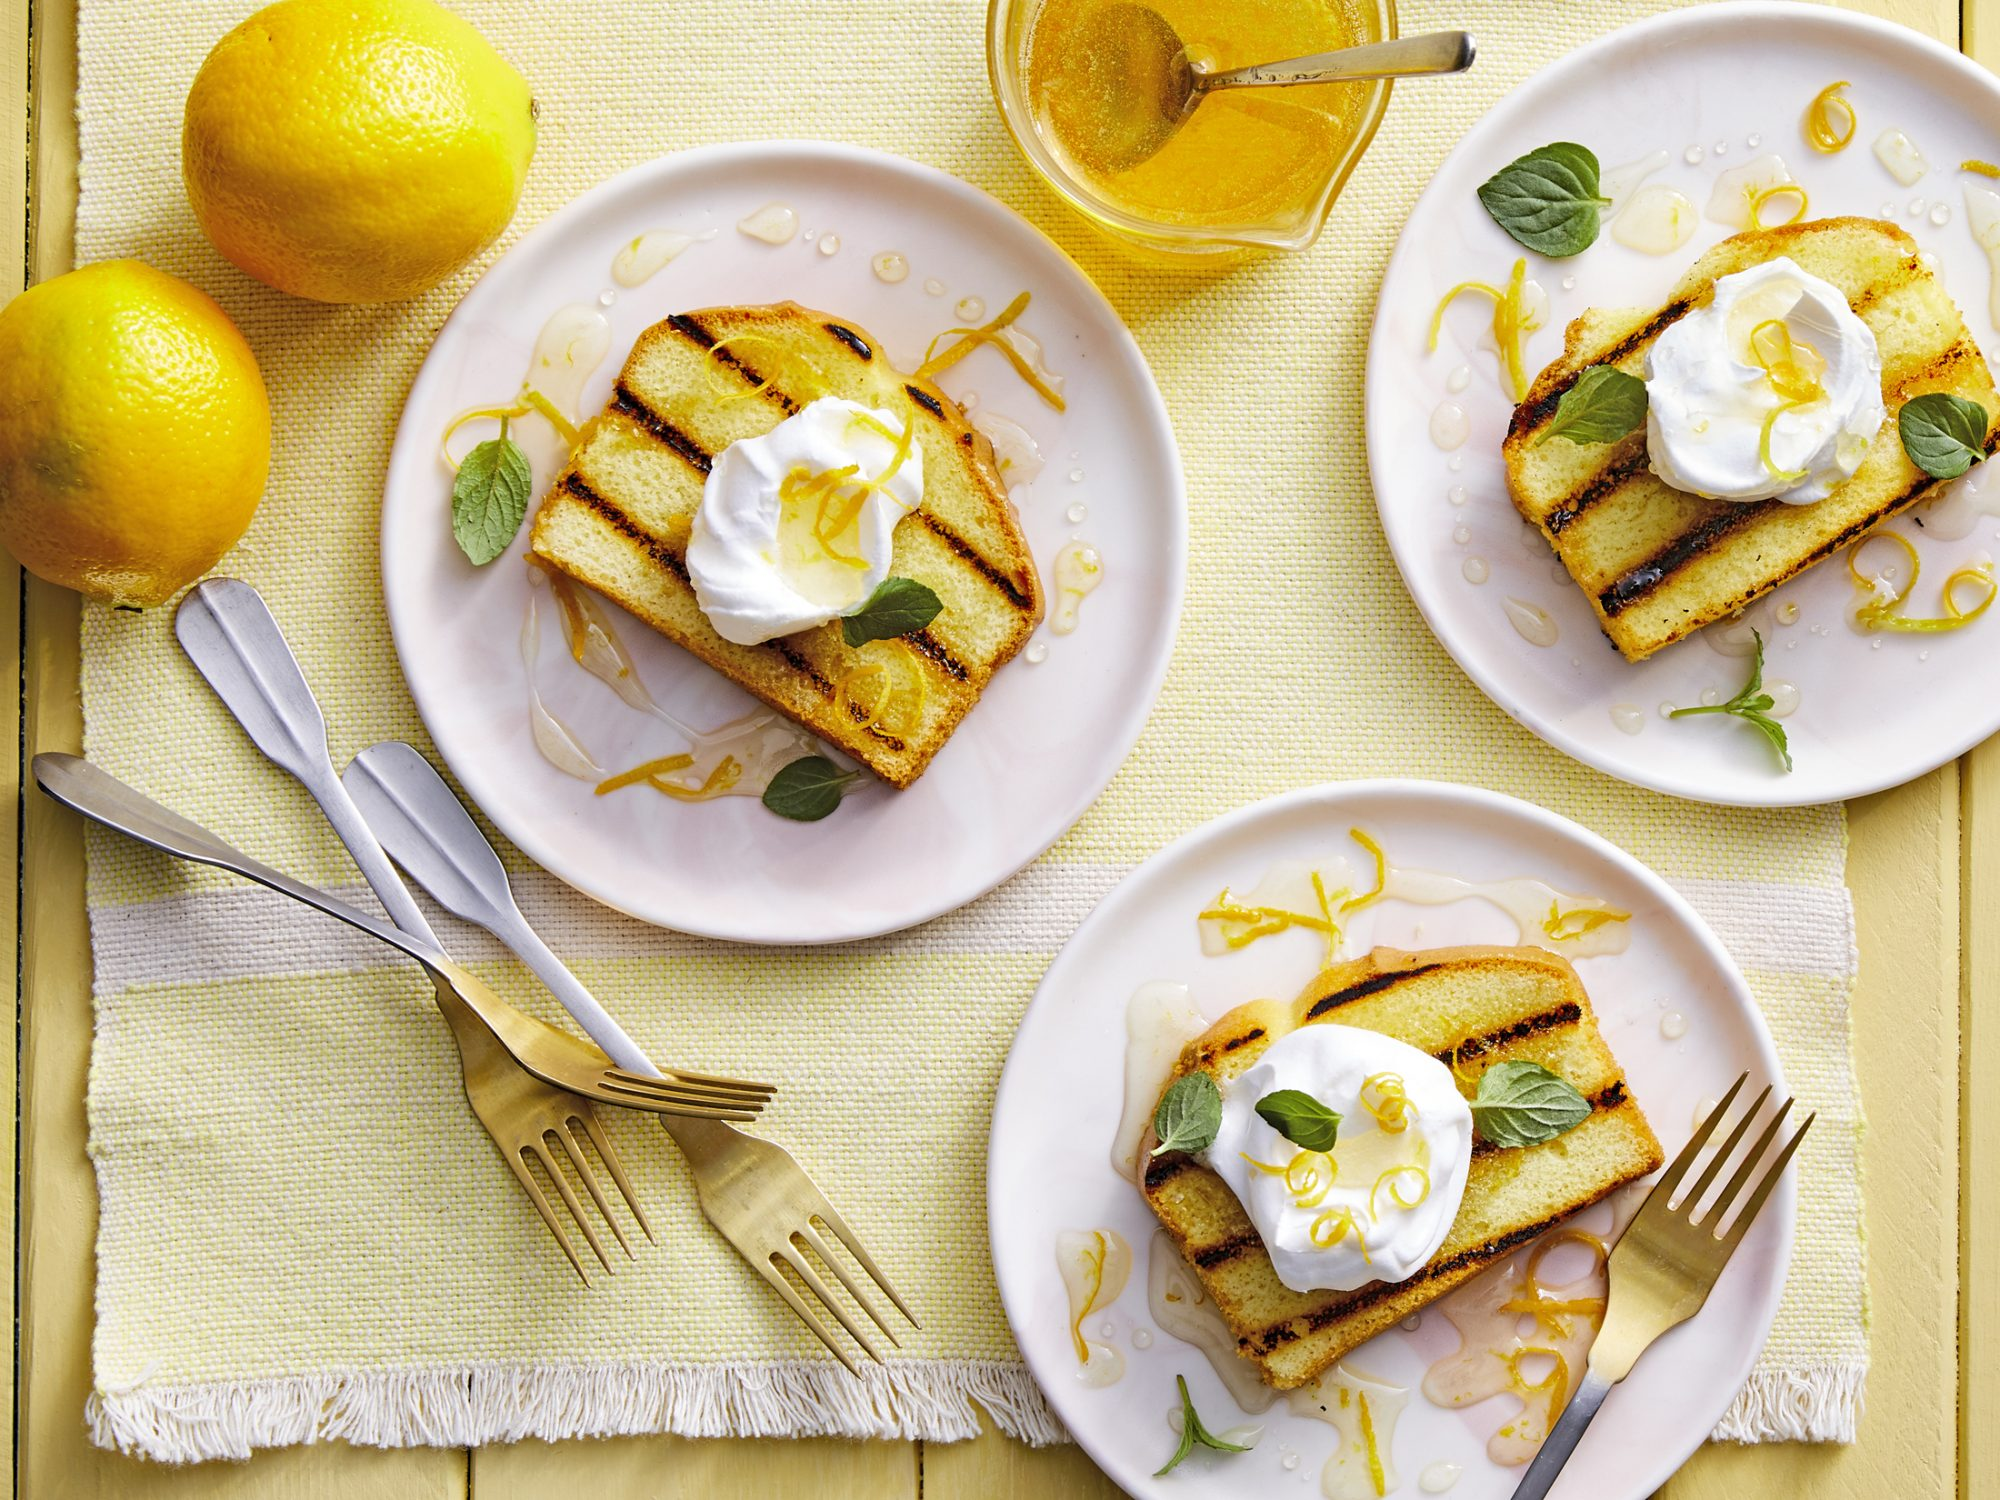 Grilled_Pound_Cake_with_Lemon_Syrup_046.jpg